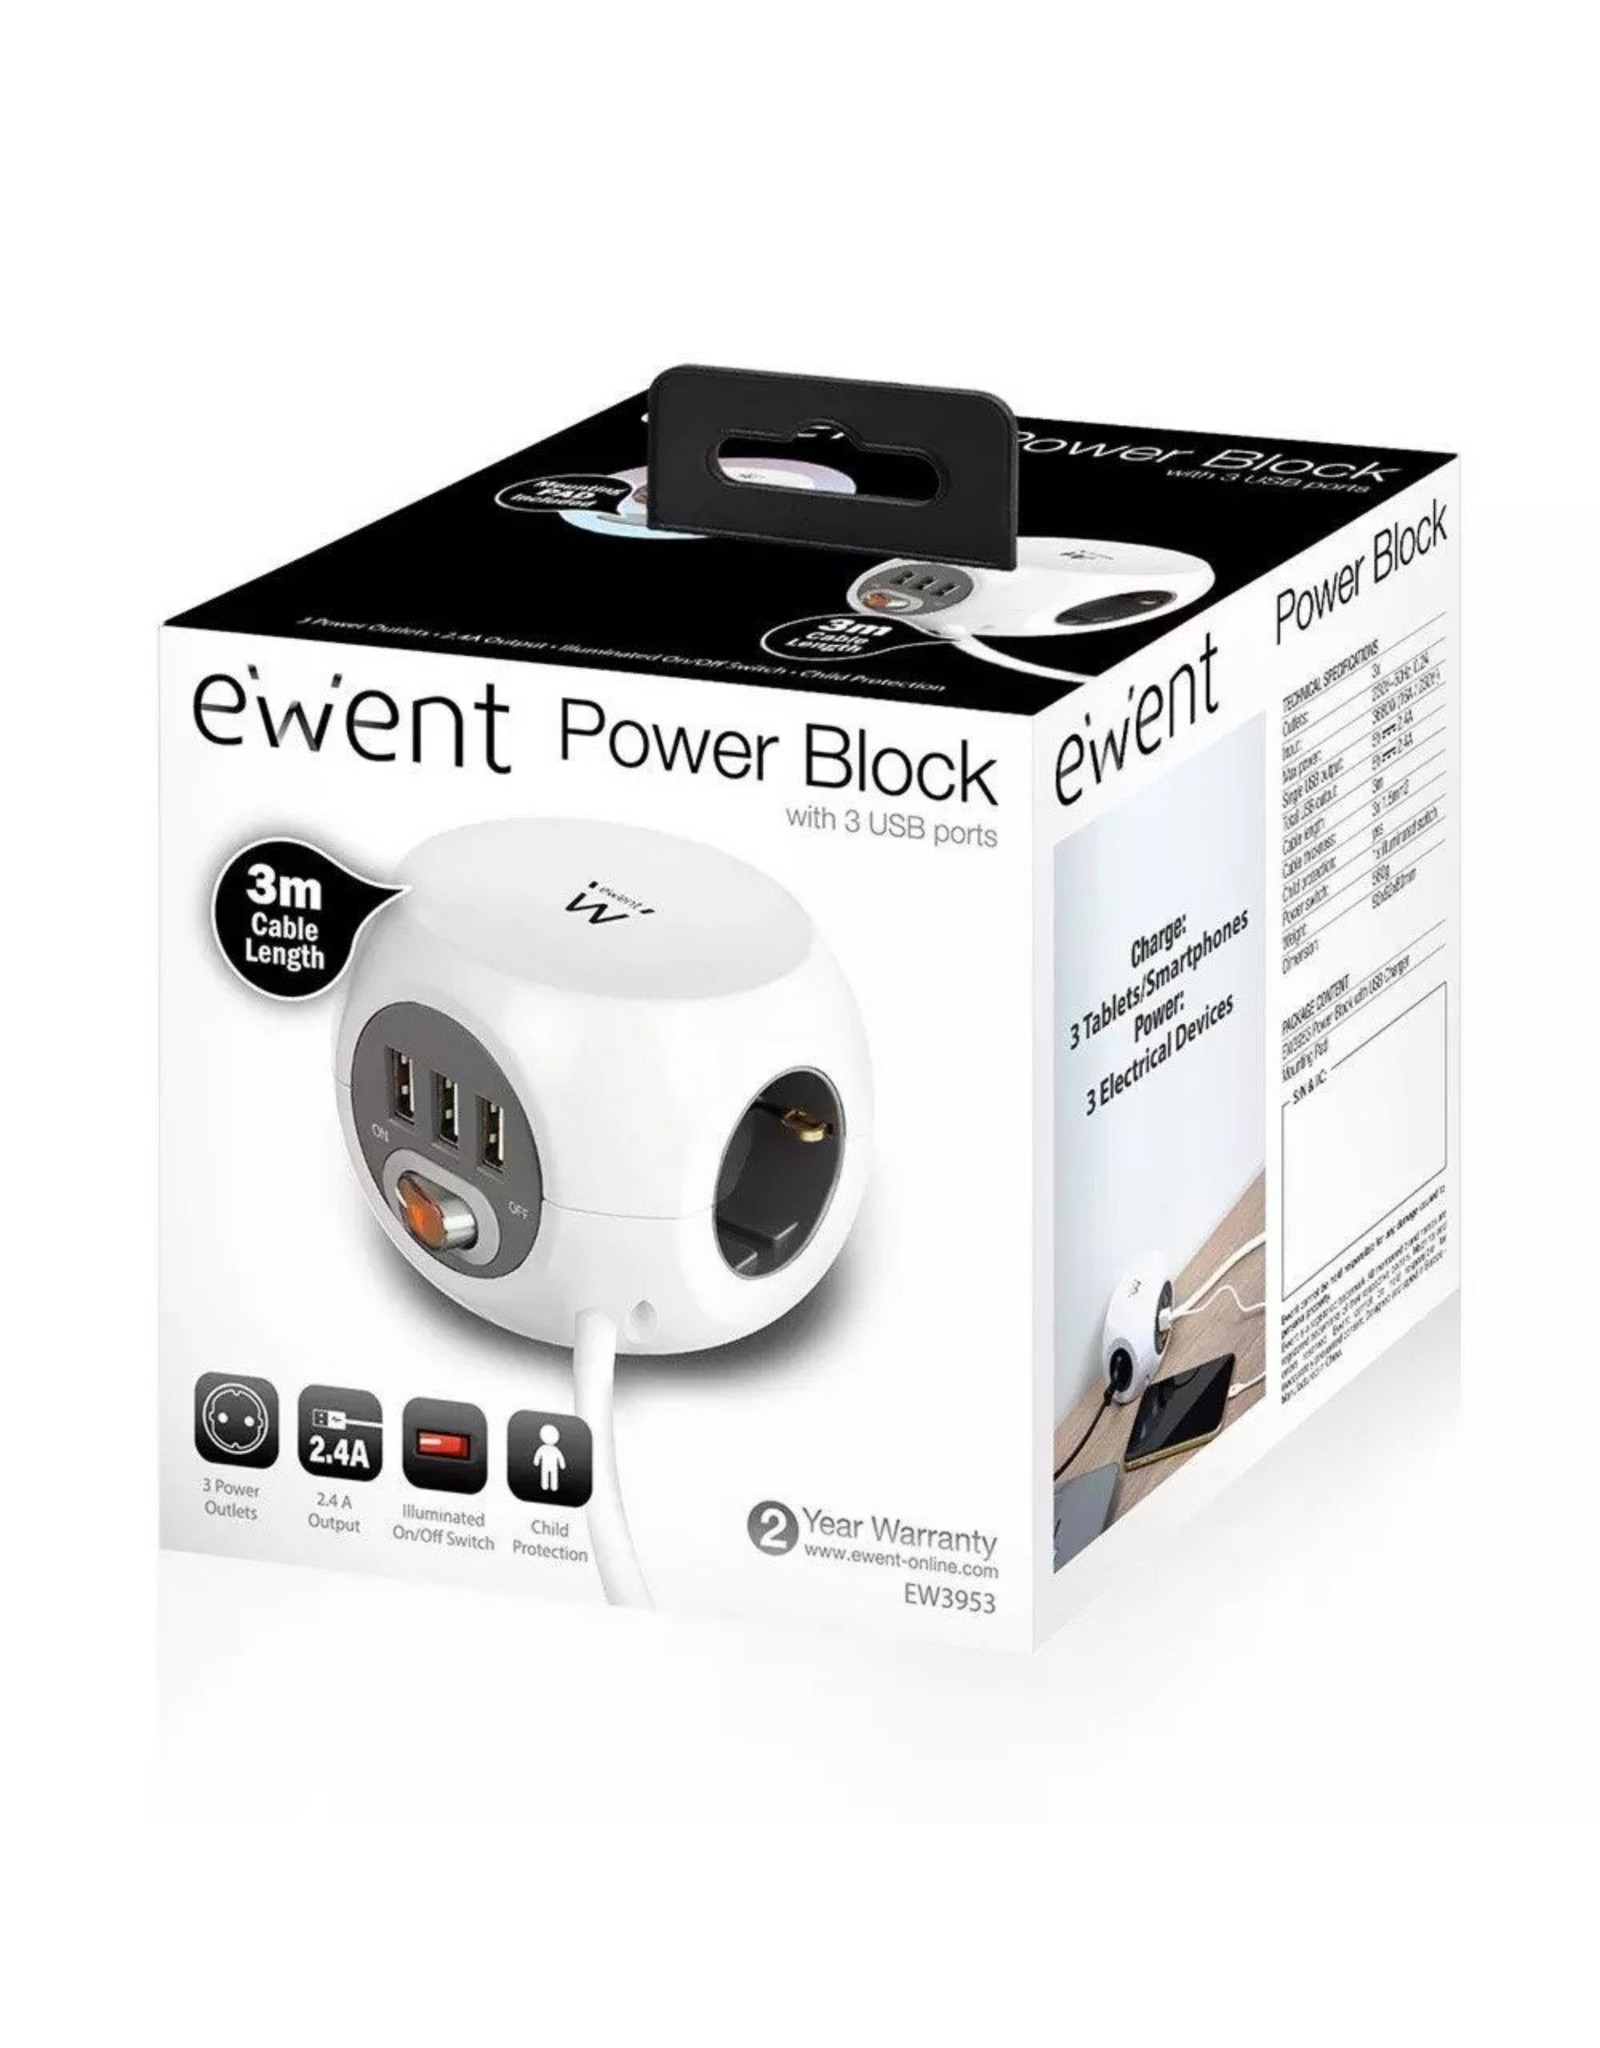 Ewent Power block 3 USB charging ports